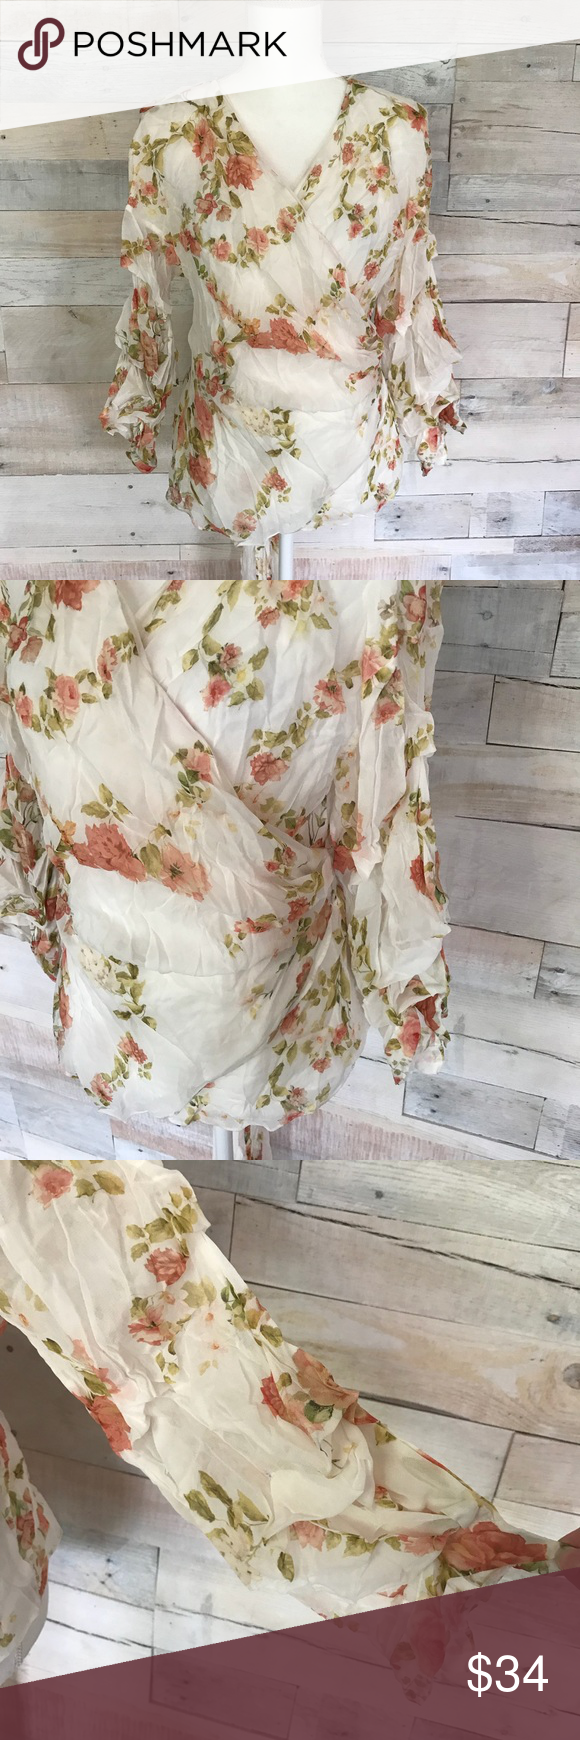 b5f7481f Zara White Sheer Floral Wrap Blouse Top Large Zara White Sheer Floral Wrap  Blouse Top Shirt With Ruched Sleeve Detail Women's Size Large Great  condition ...